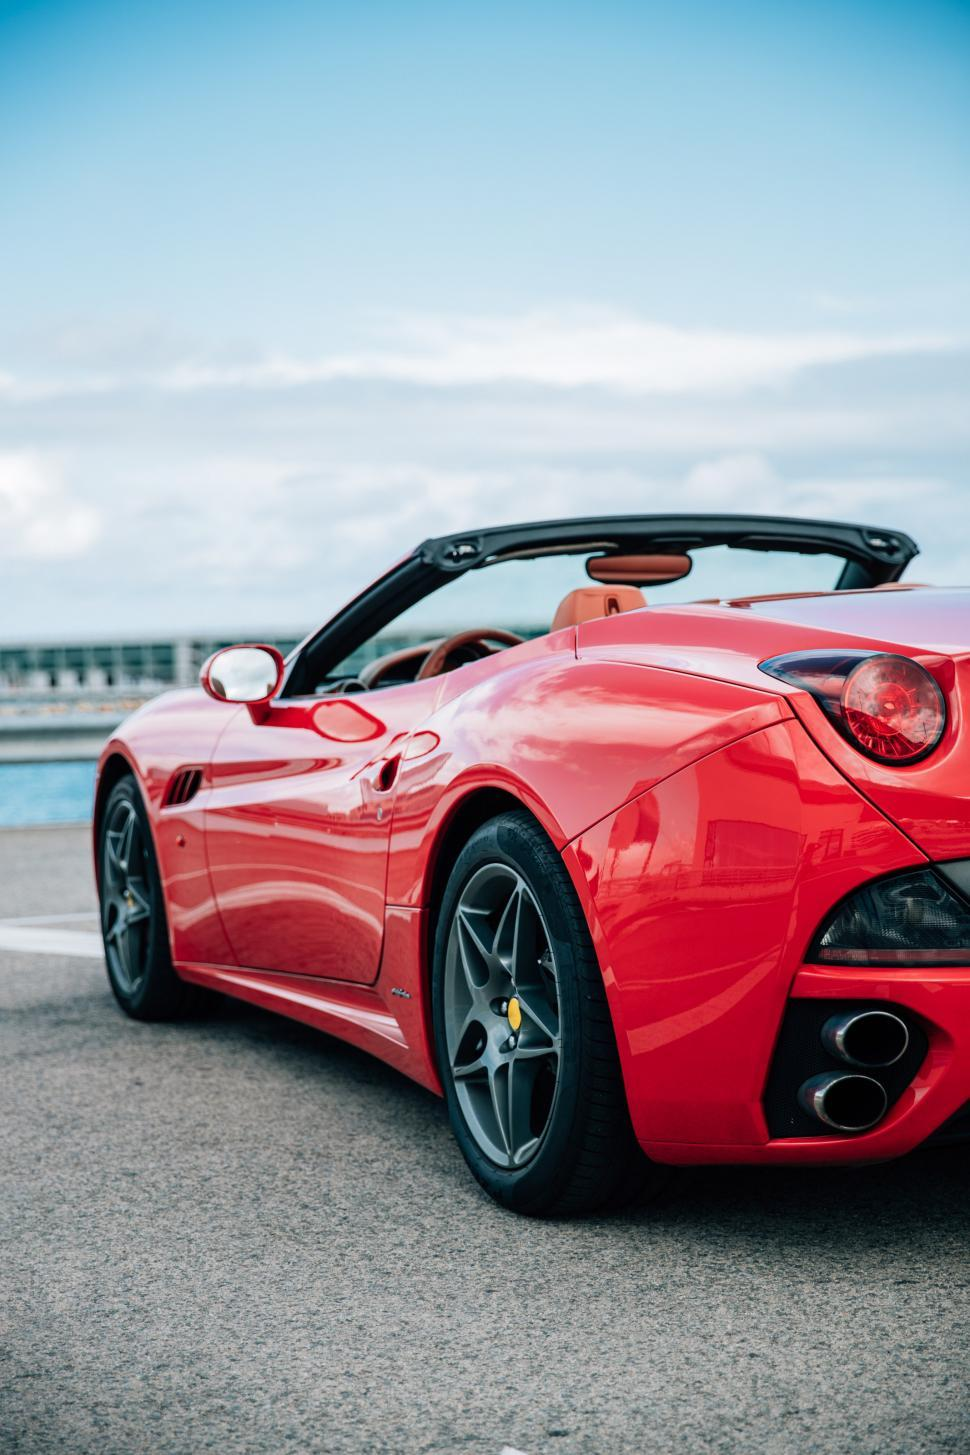 Download Free Stock HD Photo of Side view of a red convertible sports car Online